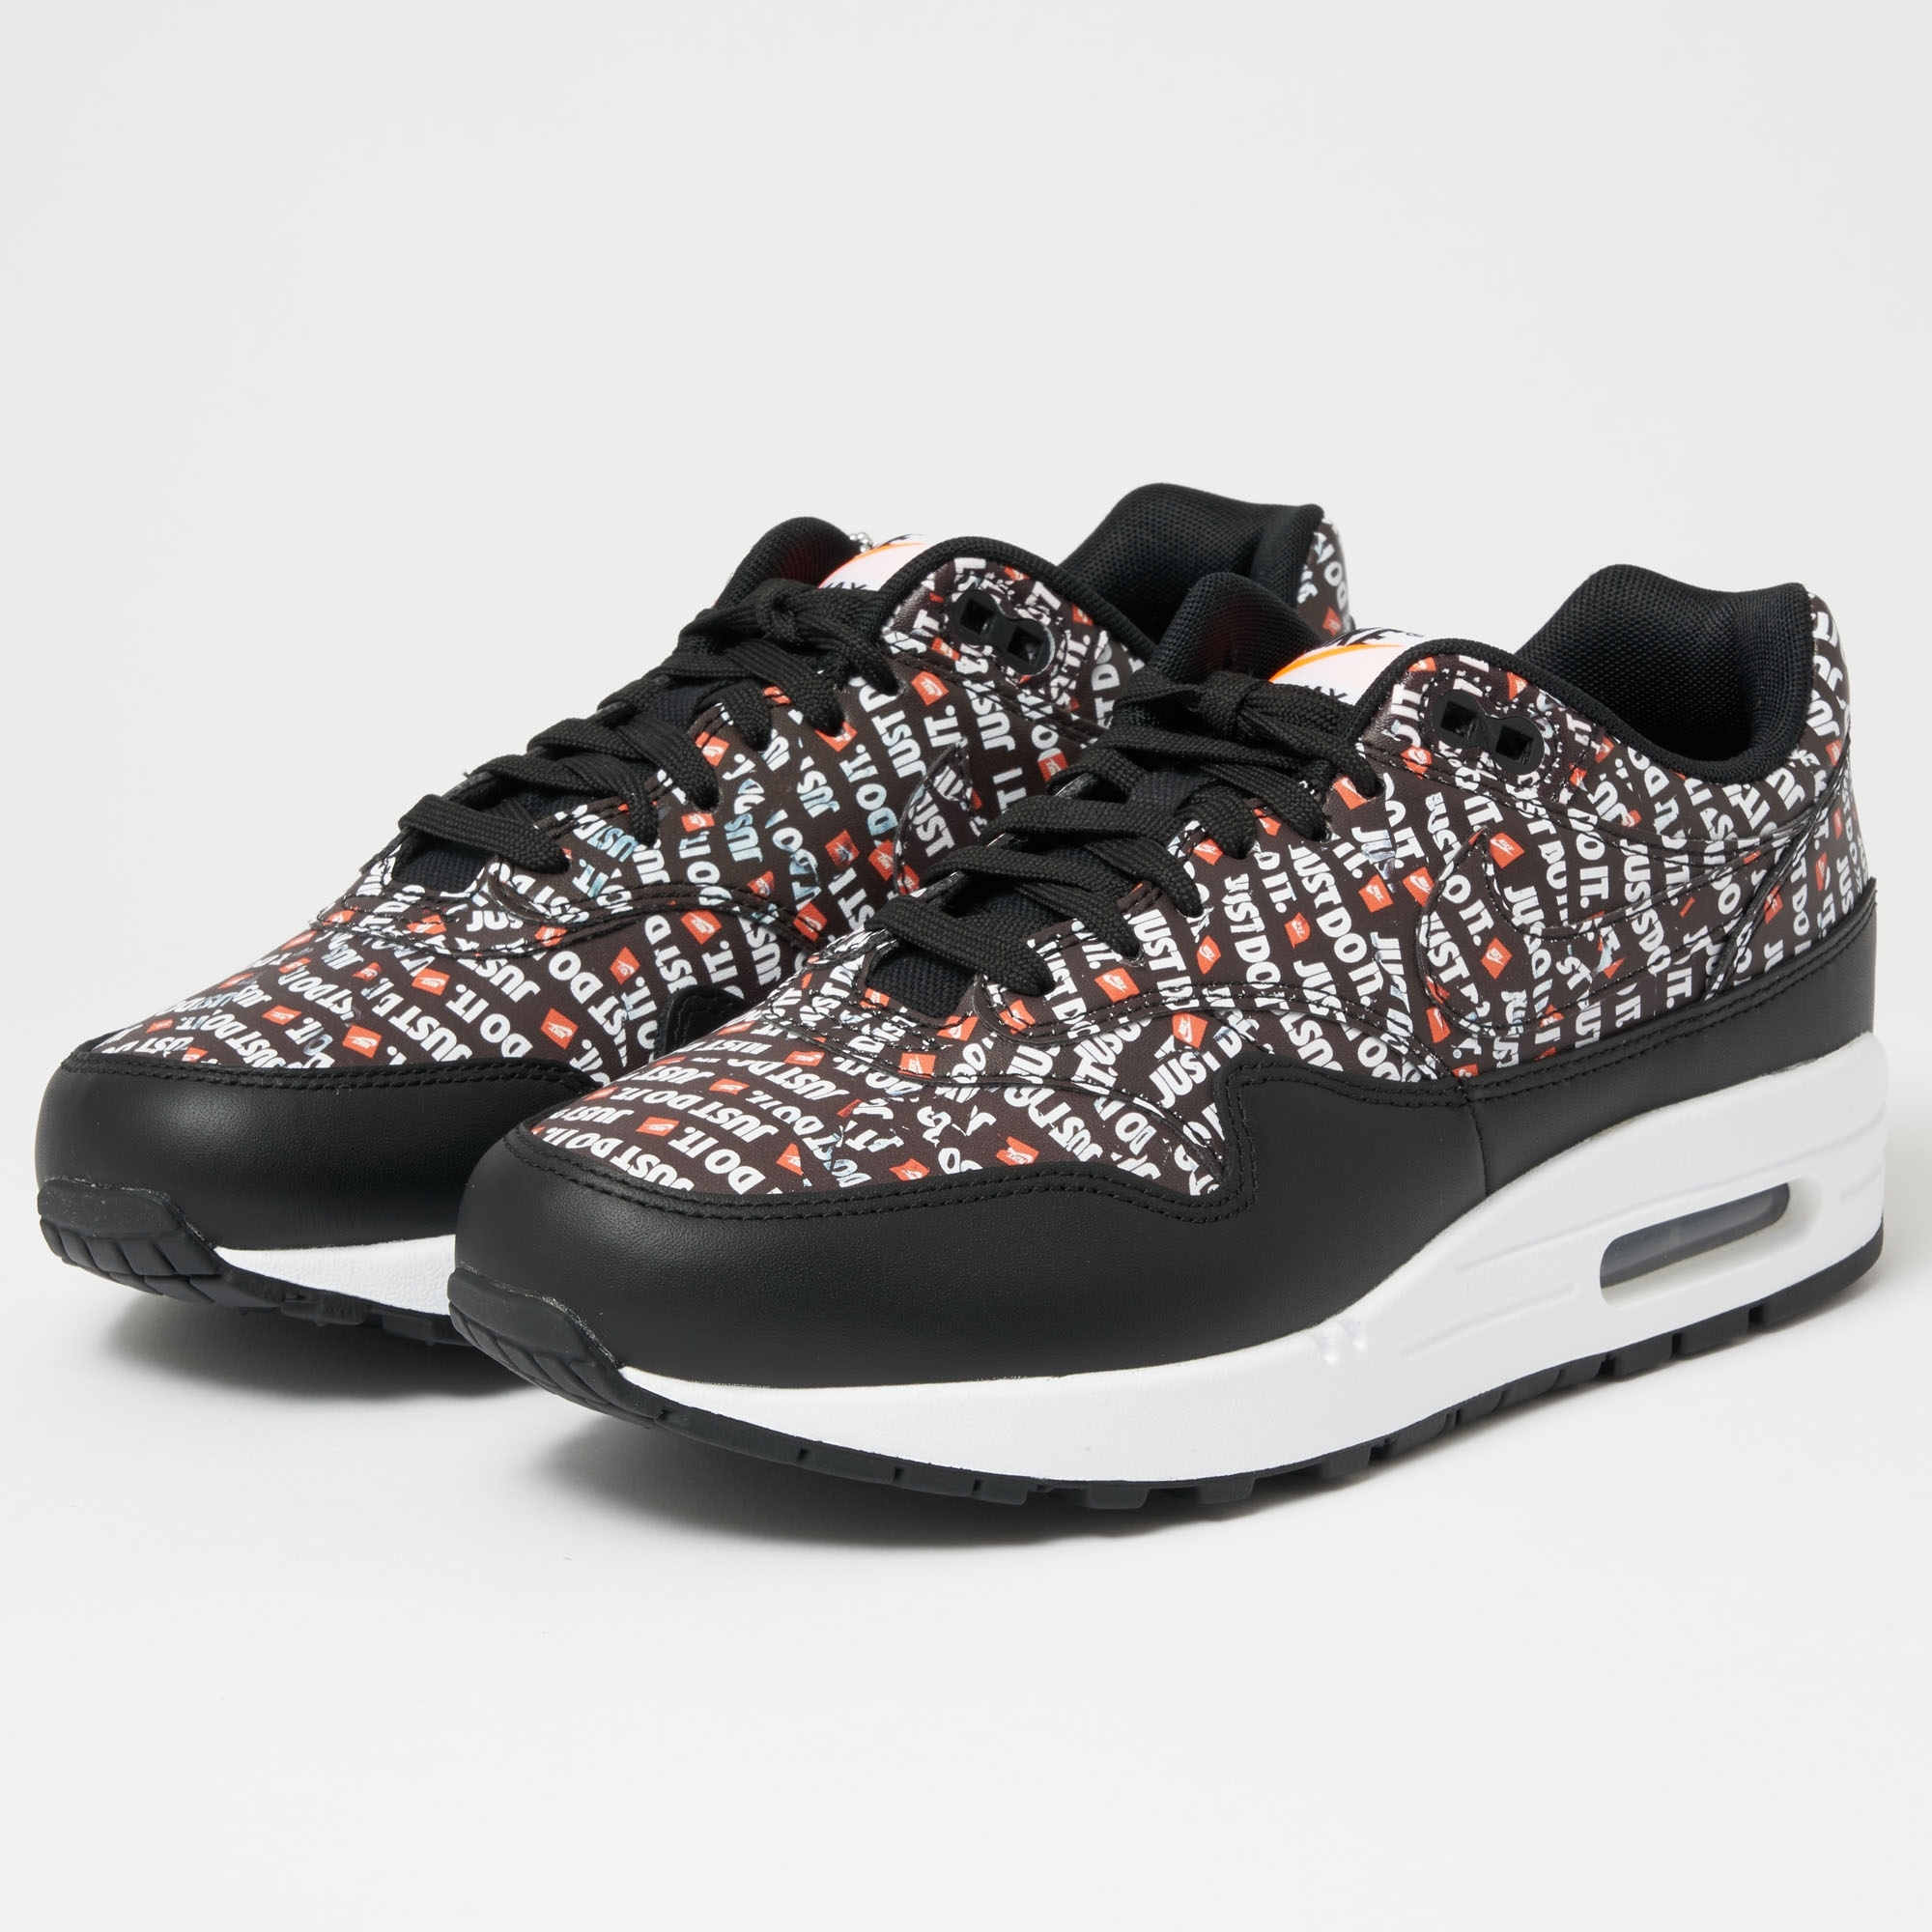 outlet store 5f4ea 14081 Air Max 1 PRM - Black, White   Total Orange